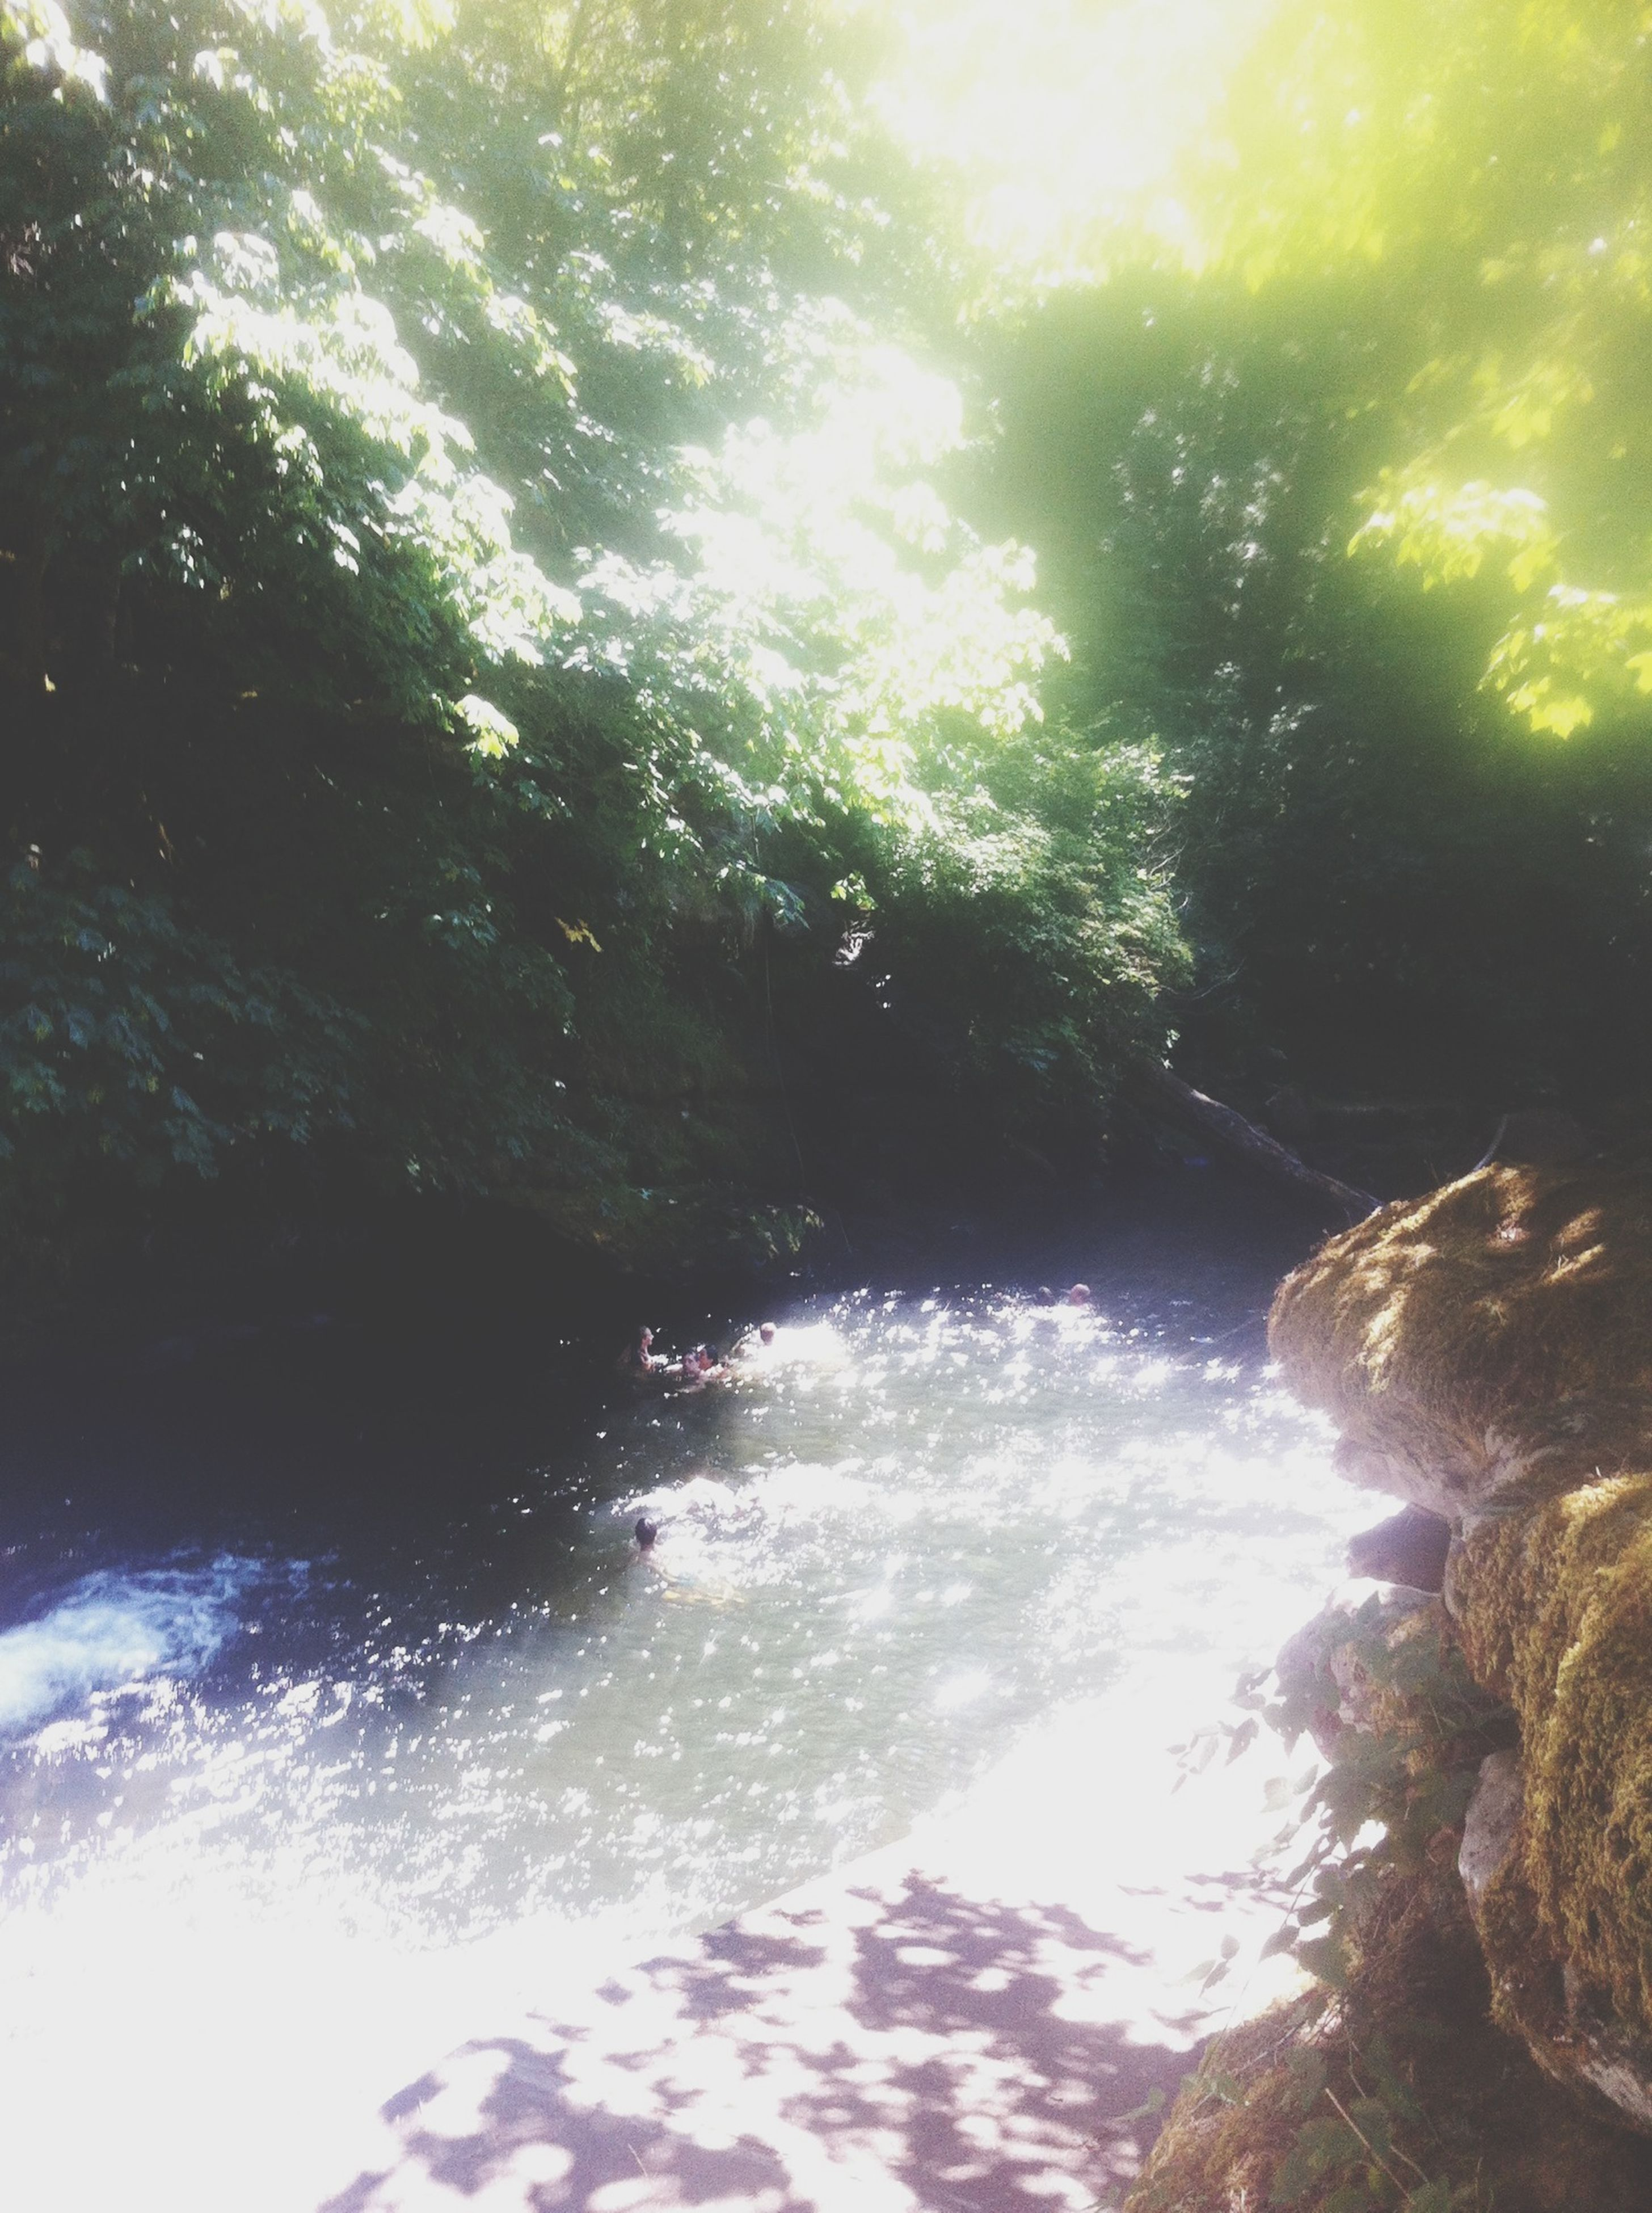 water, tree, sunlight, nature, beauty in nature, scenics, tranquility, motion, flowing water, rock - object, sunbeam, day, tranquil scene, outdoors, river, lens flare, forest, growth, idyllic, reflection